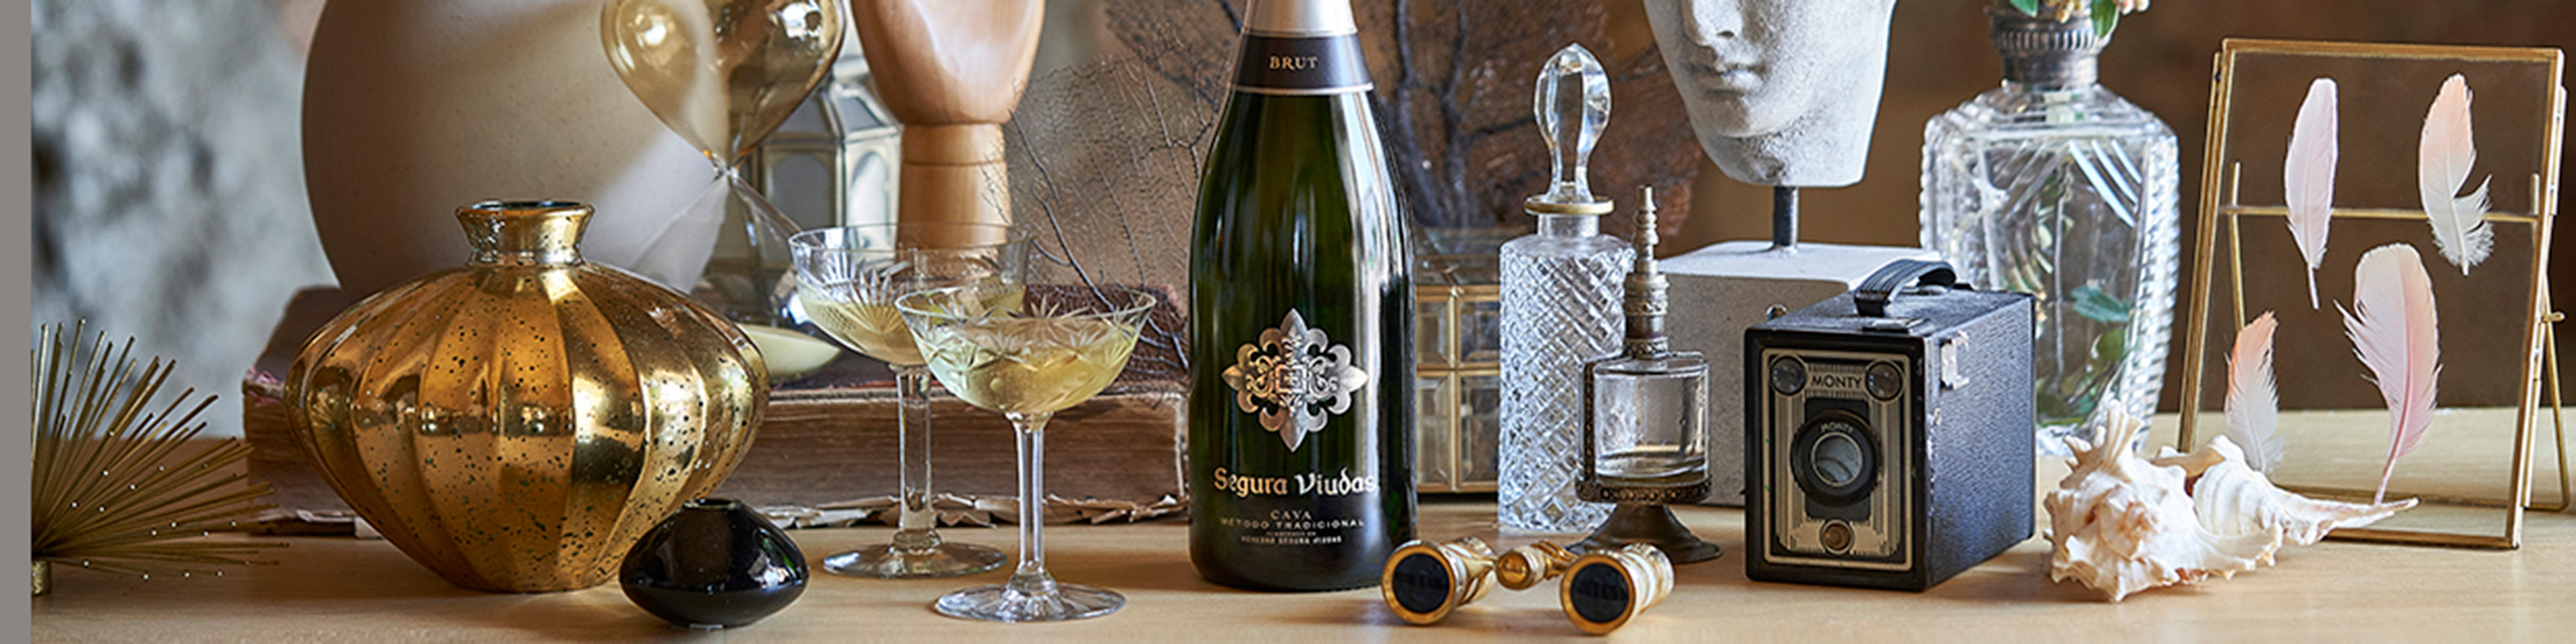 In 1959, Segura Viudas began producing Cava, Spanish sparkling wine, with indigenous grapes and using the time-honored traditional method.  Over the years, we have strived to combine our heritage and passion for winemaking with our commitment to the sustainability and biodiversity of our lands to craft the highest quality artisan Cavas that are enjoyed across the globe. #RespectTheRoots